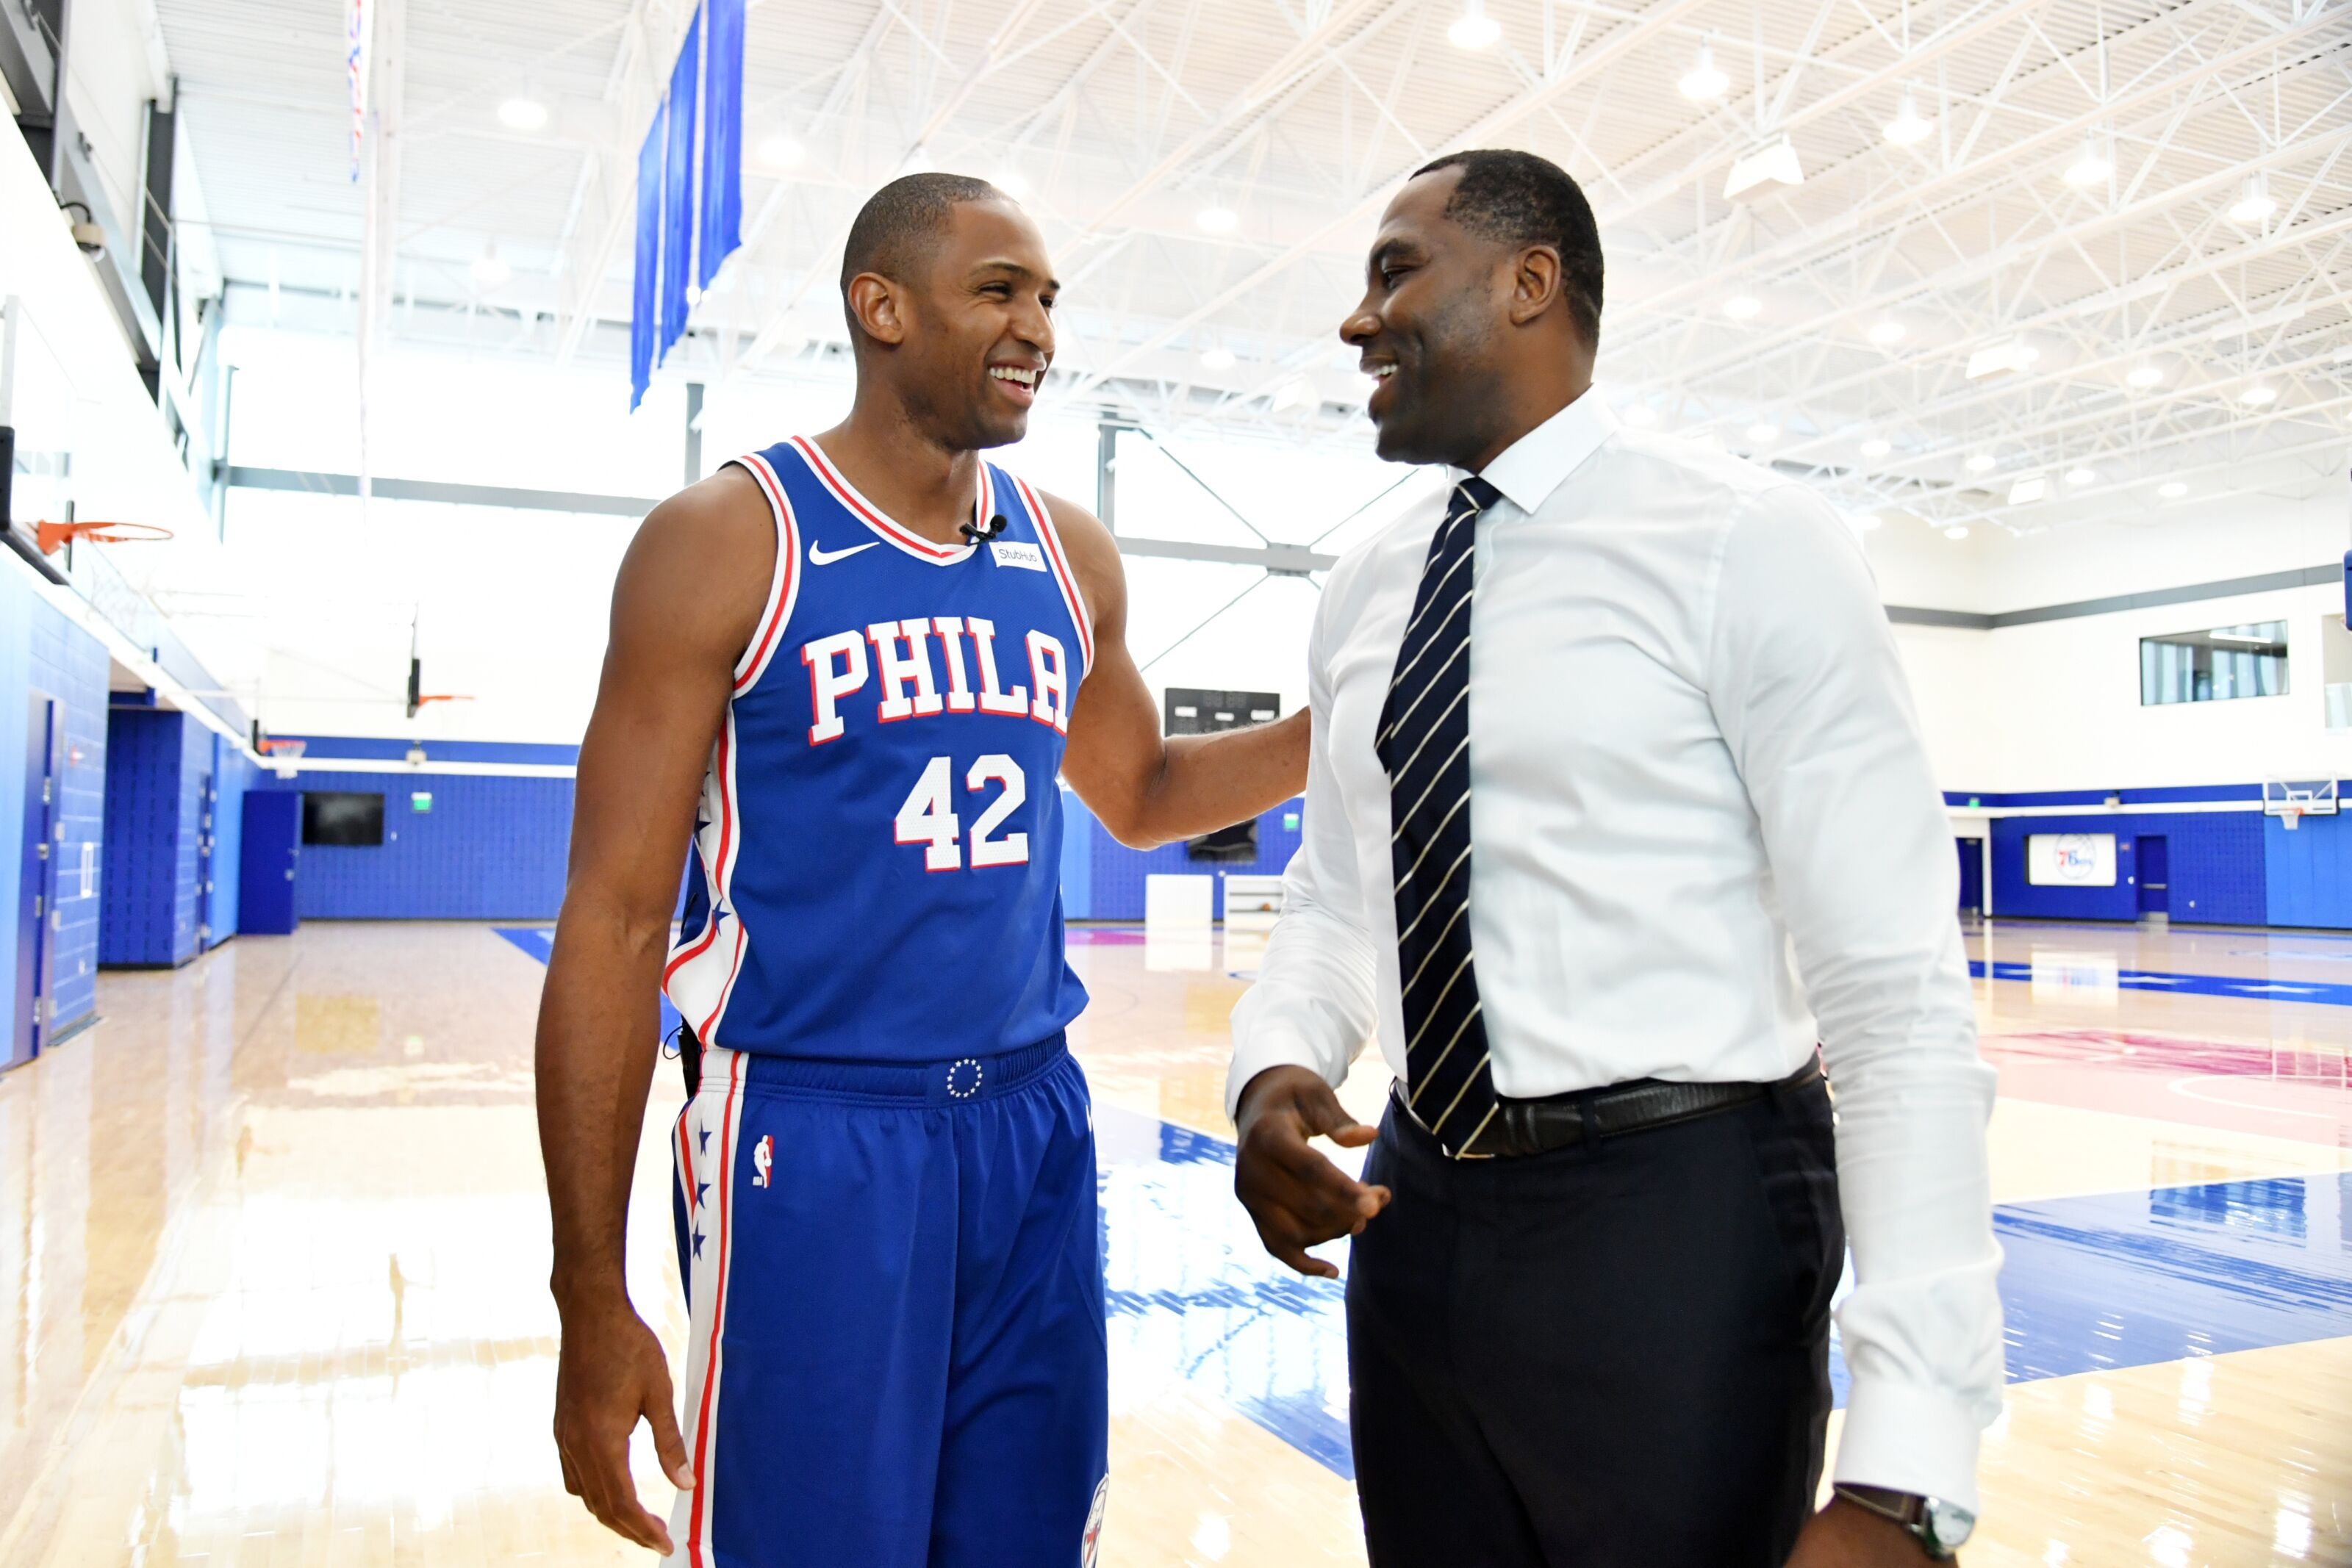 Philadelphia 76ers: There's strategy behind Al Horford's four-year contract